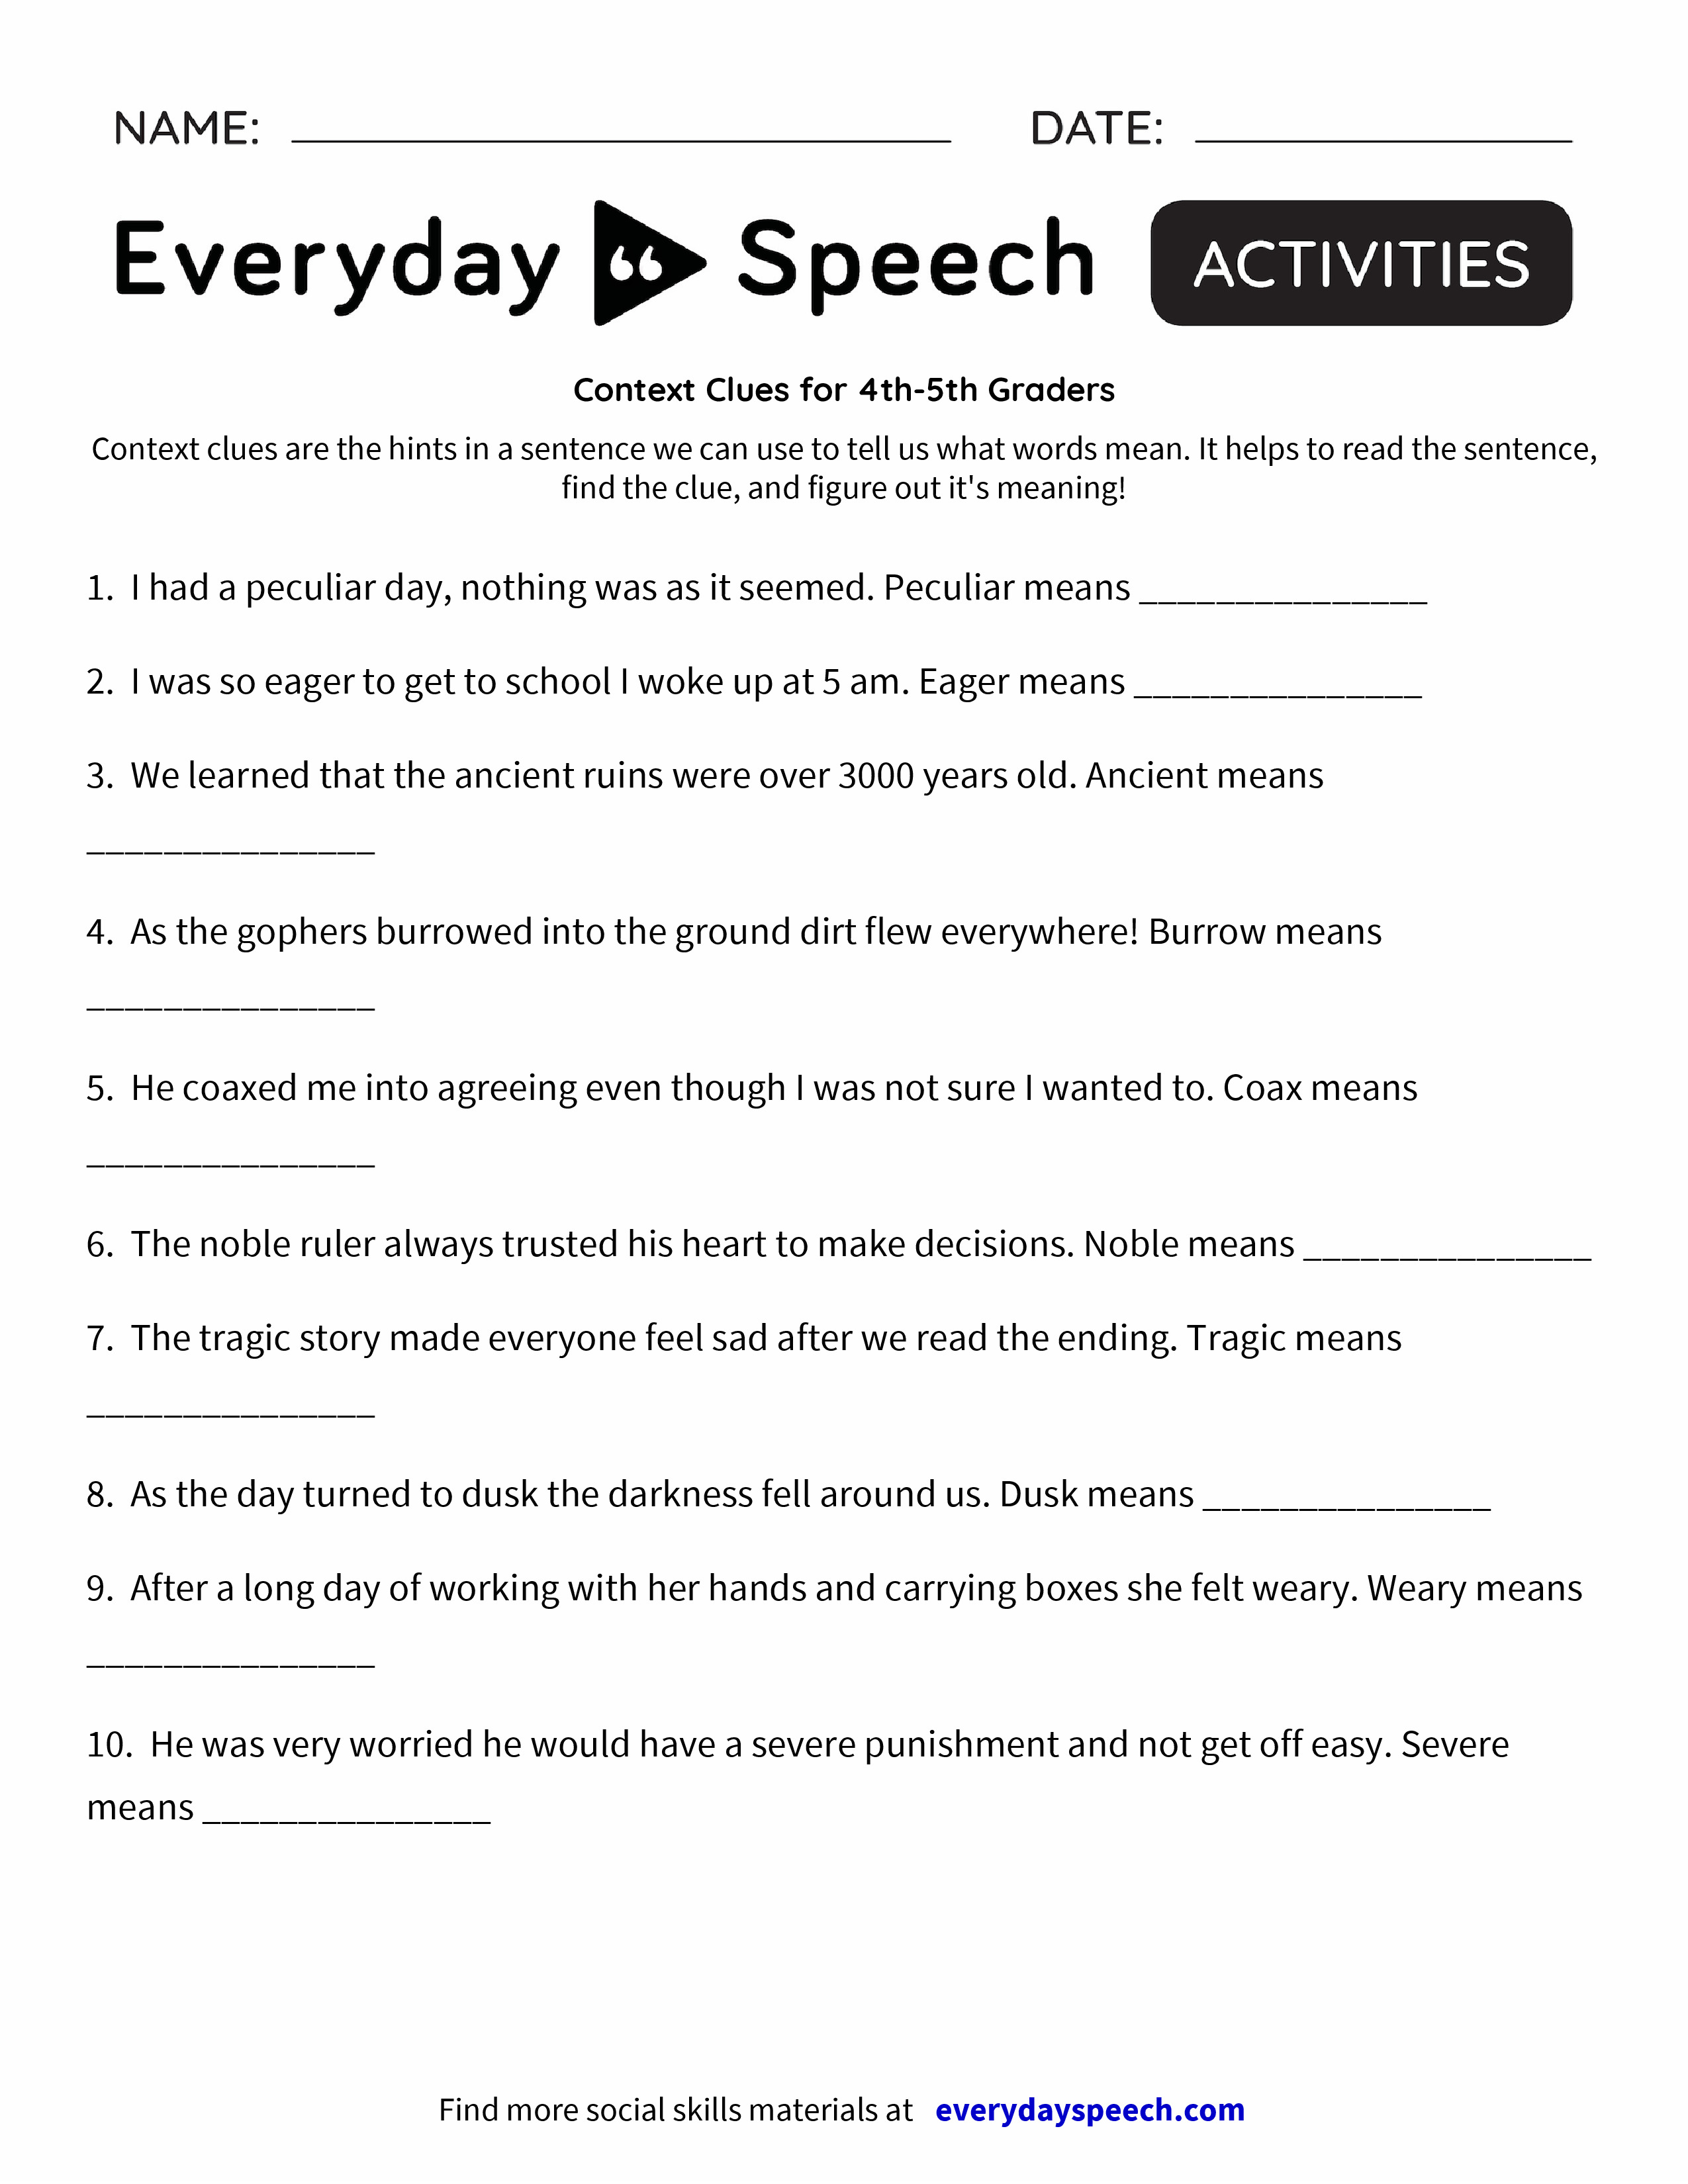 context clues for 4th 5th graders everyday speech everyday speech